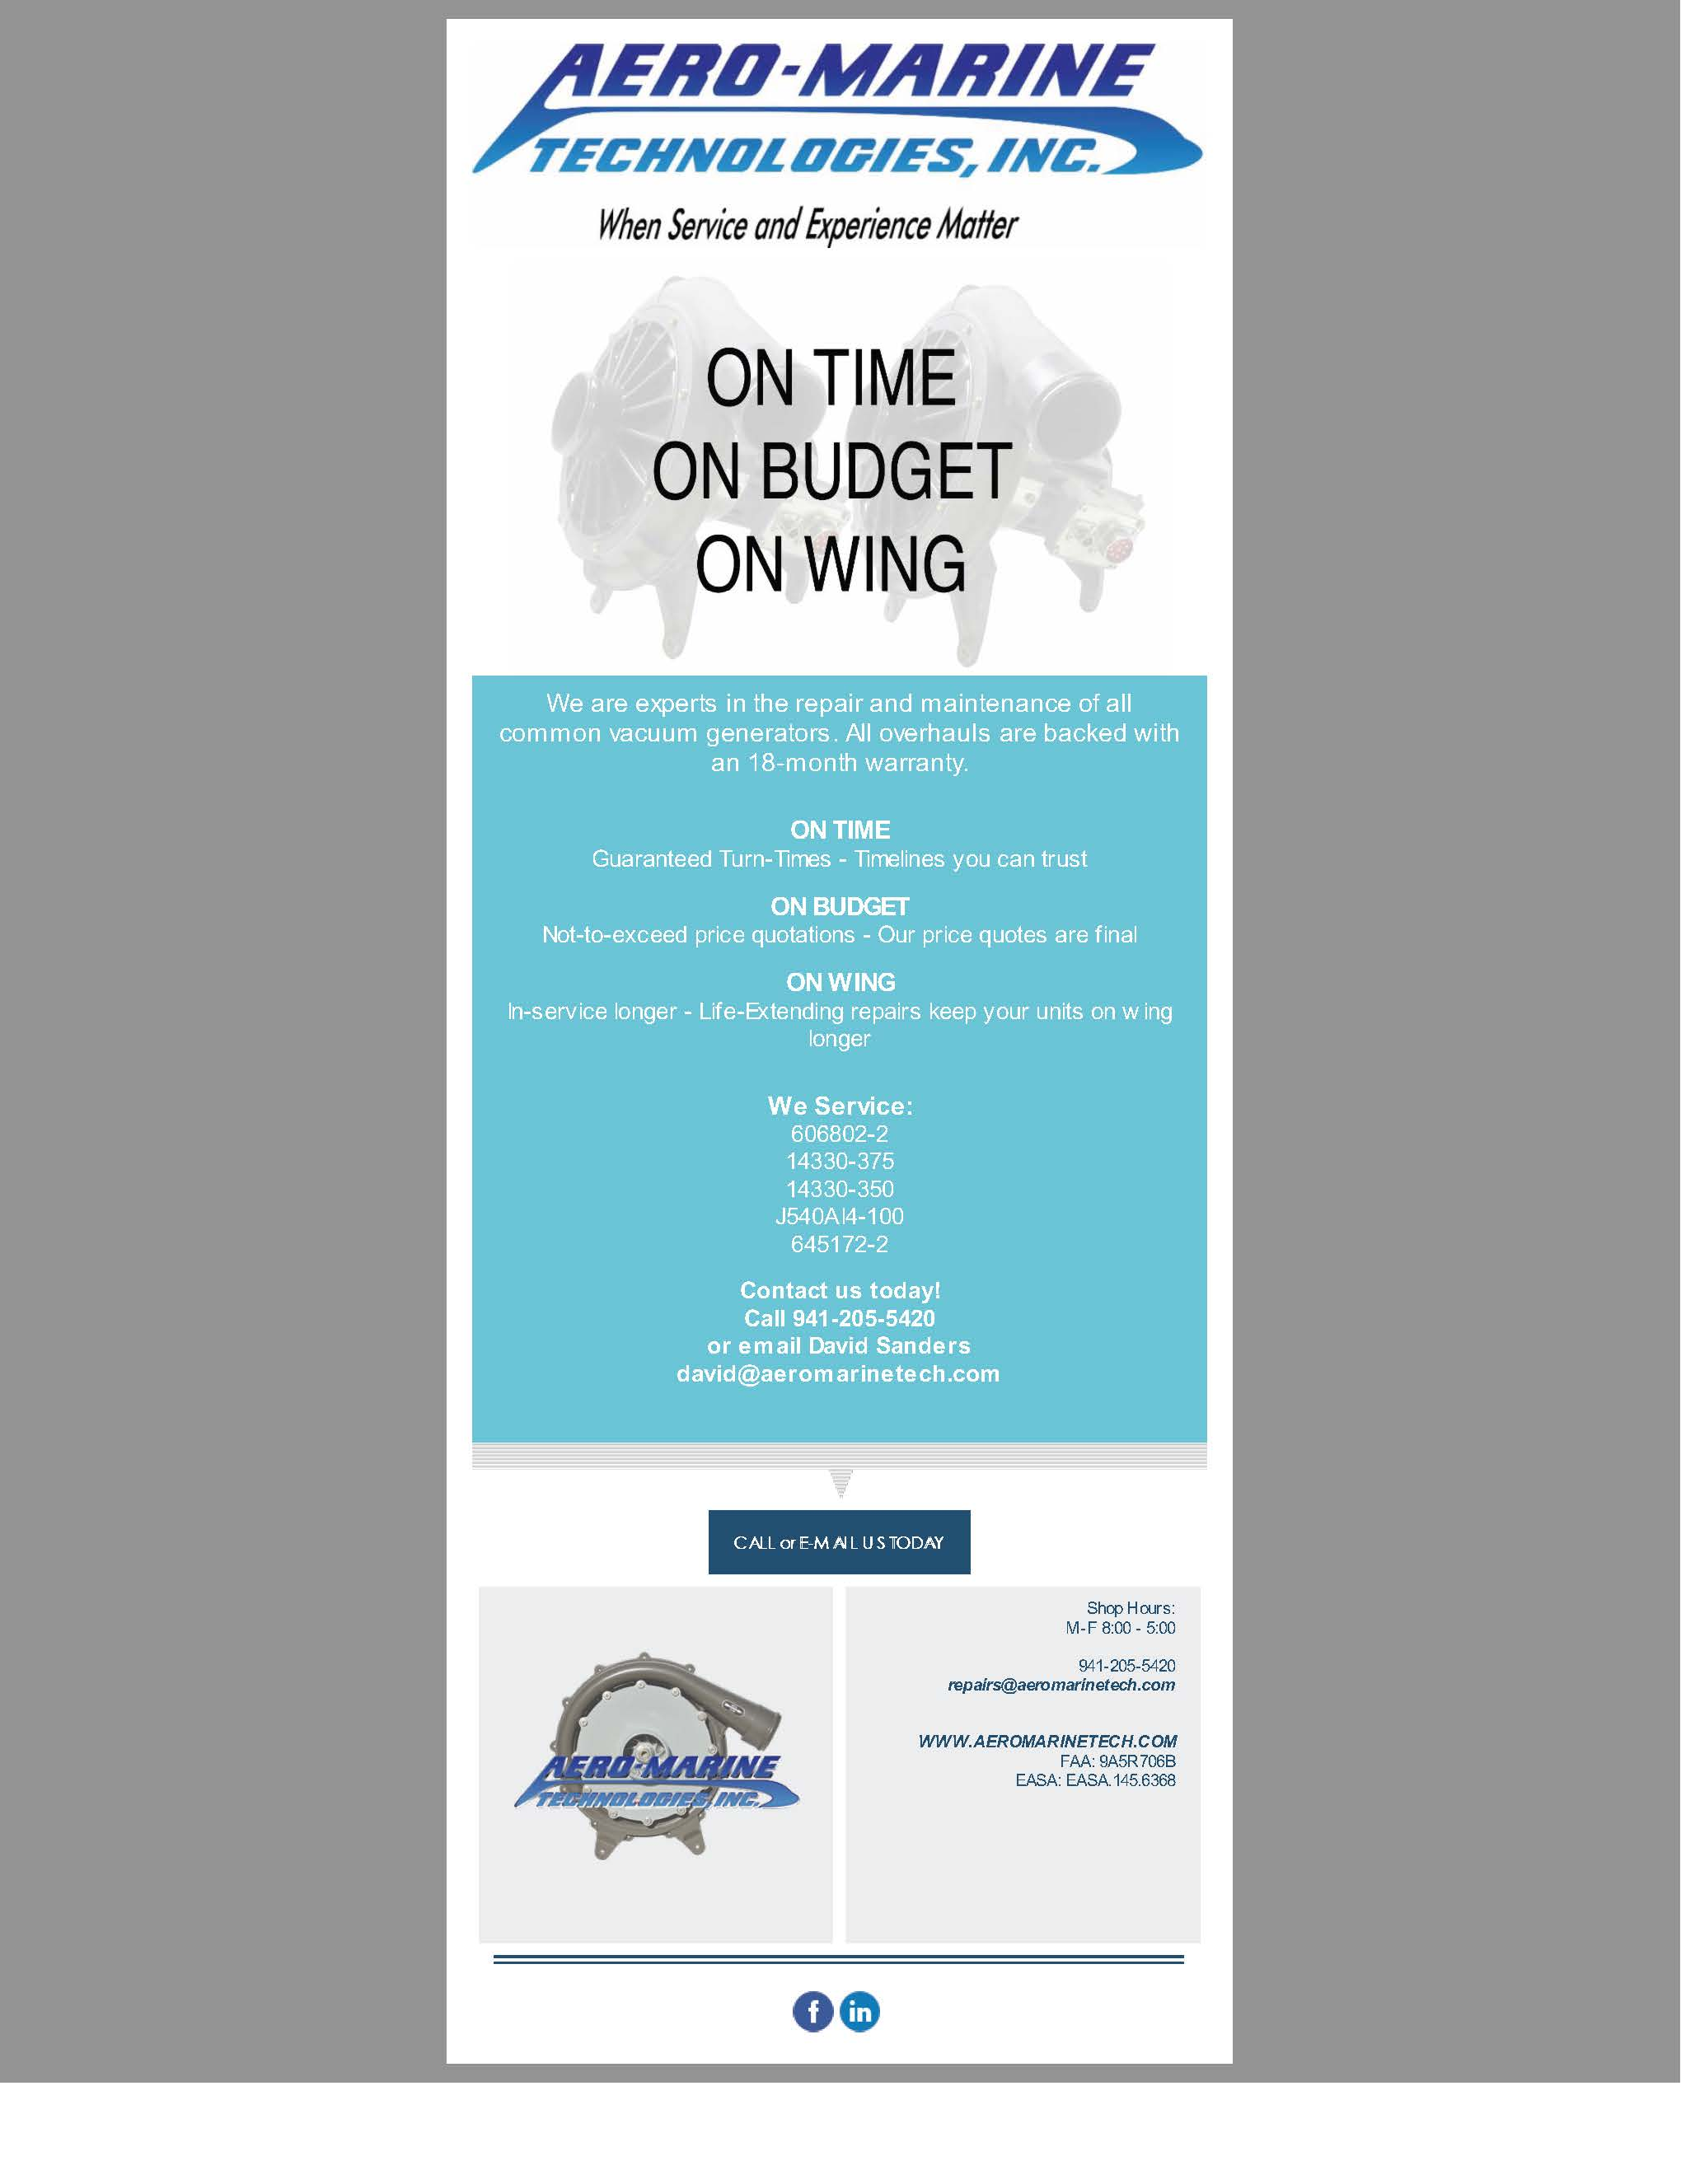 On Time | On Budget | On Wing